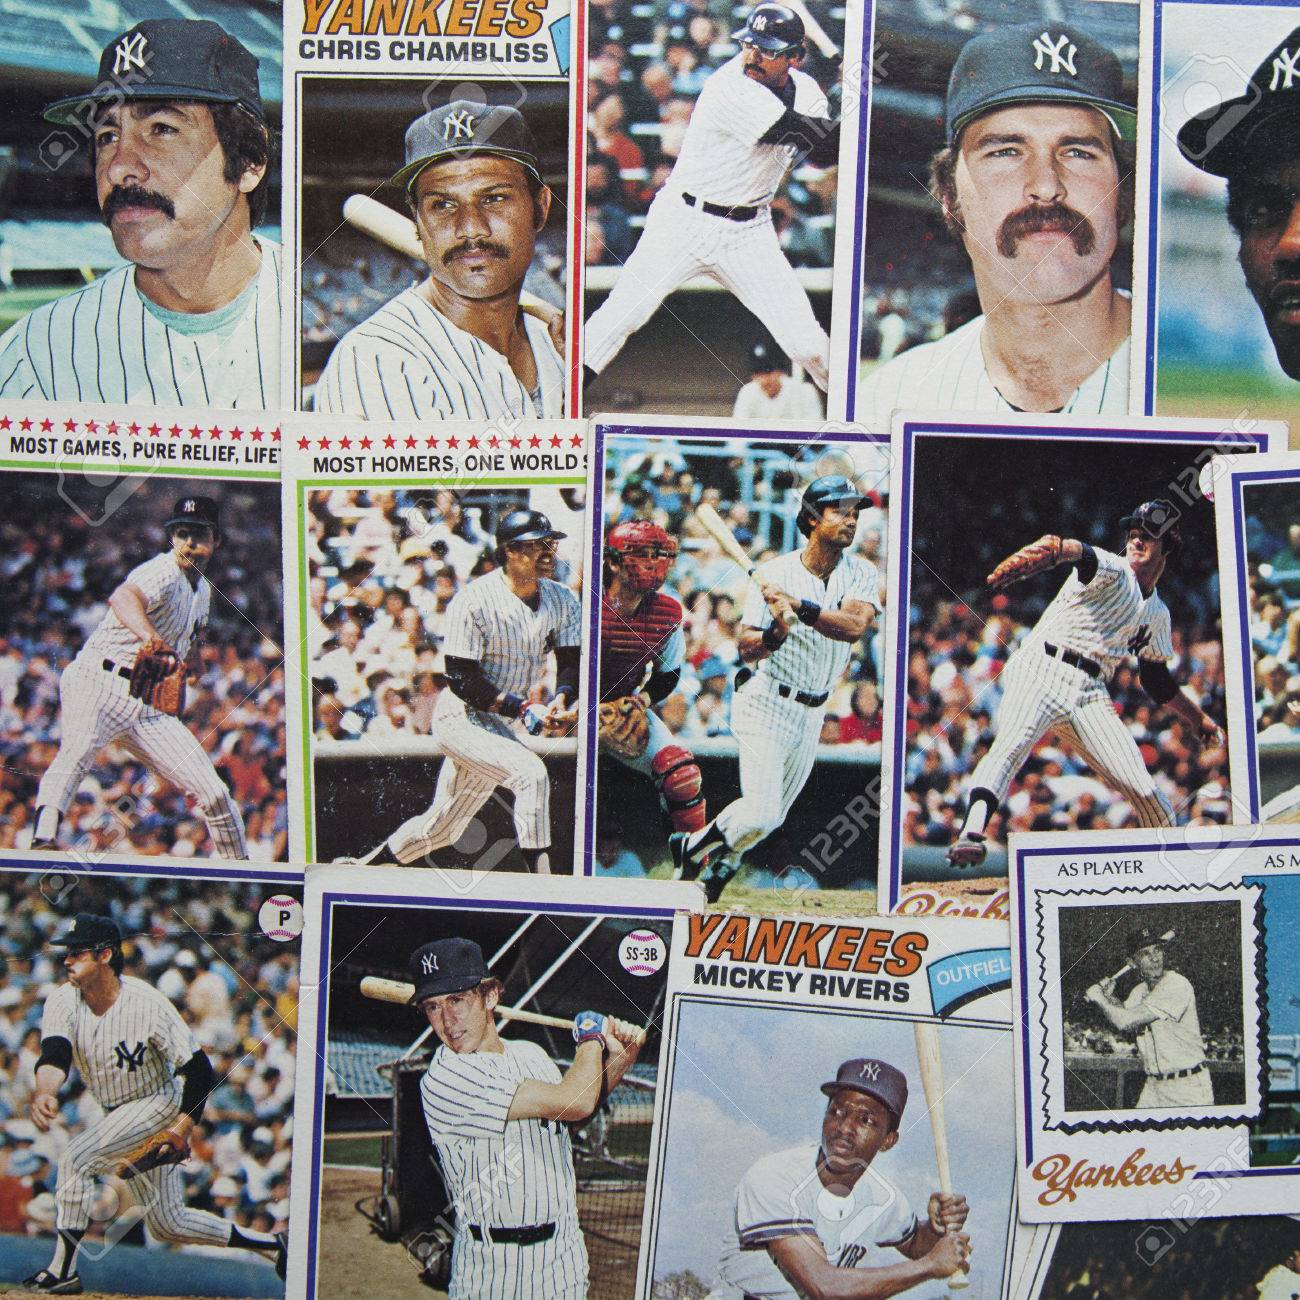 A Group Of Old 1970s Era Baseball Cards Of The New York Yankees